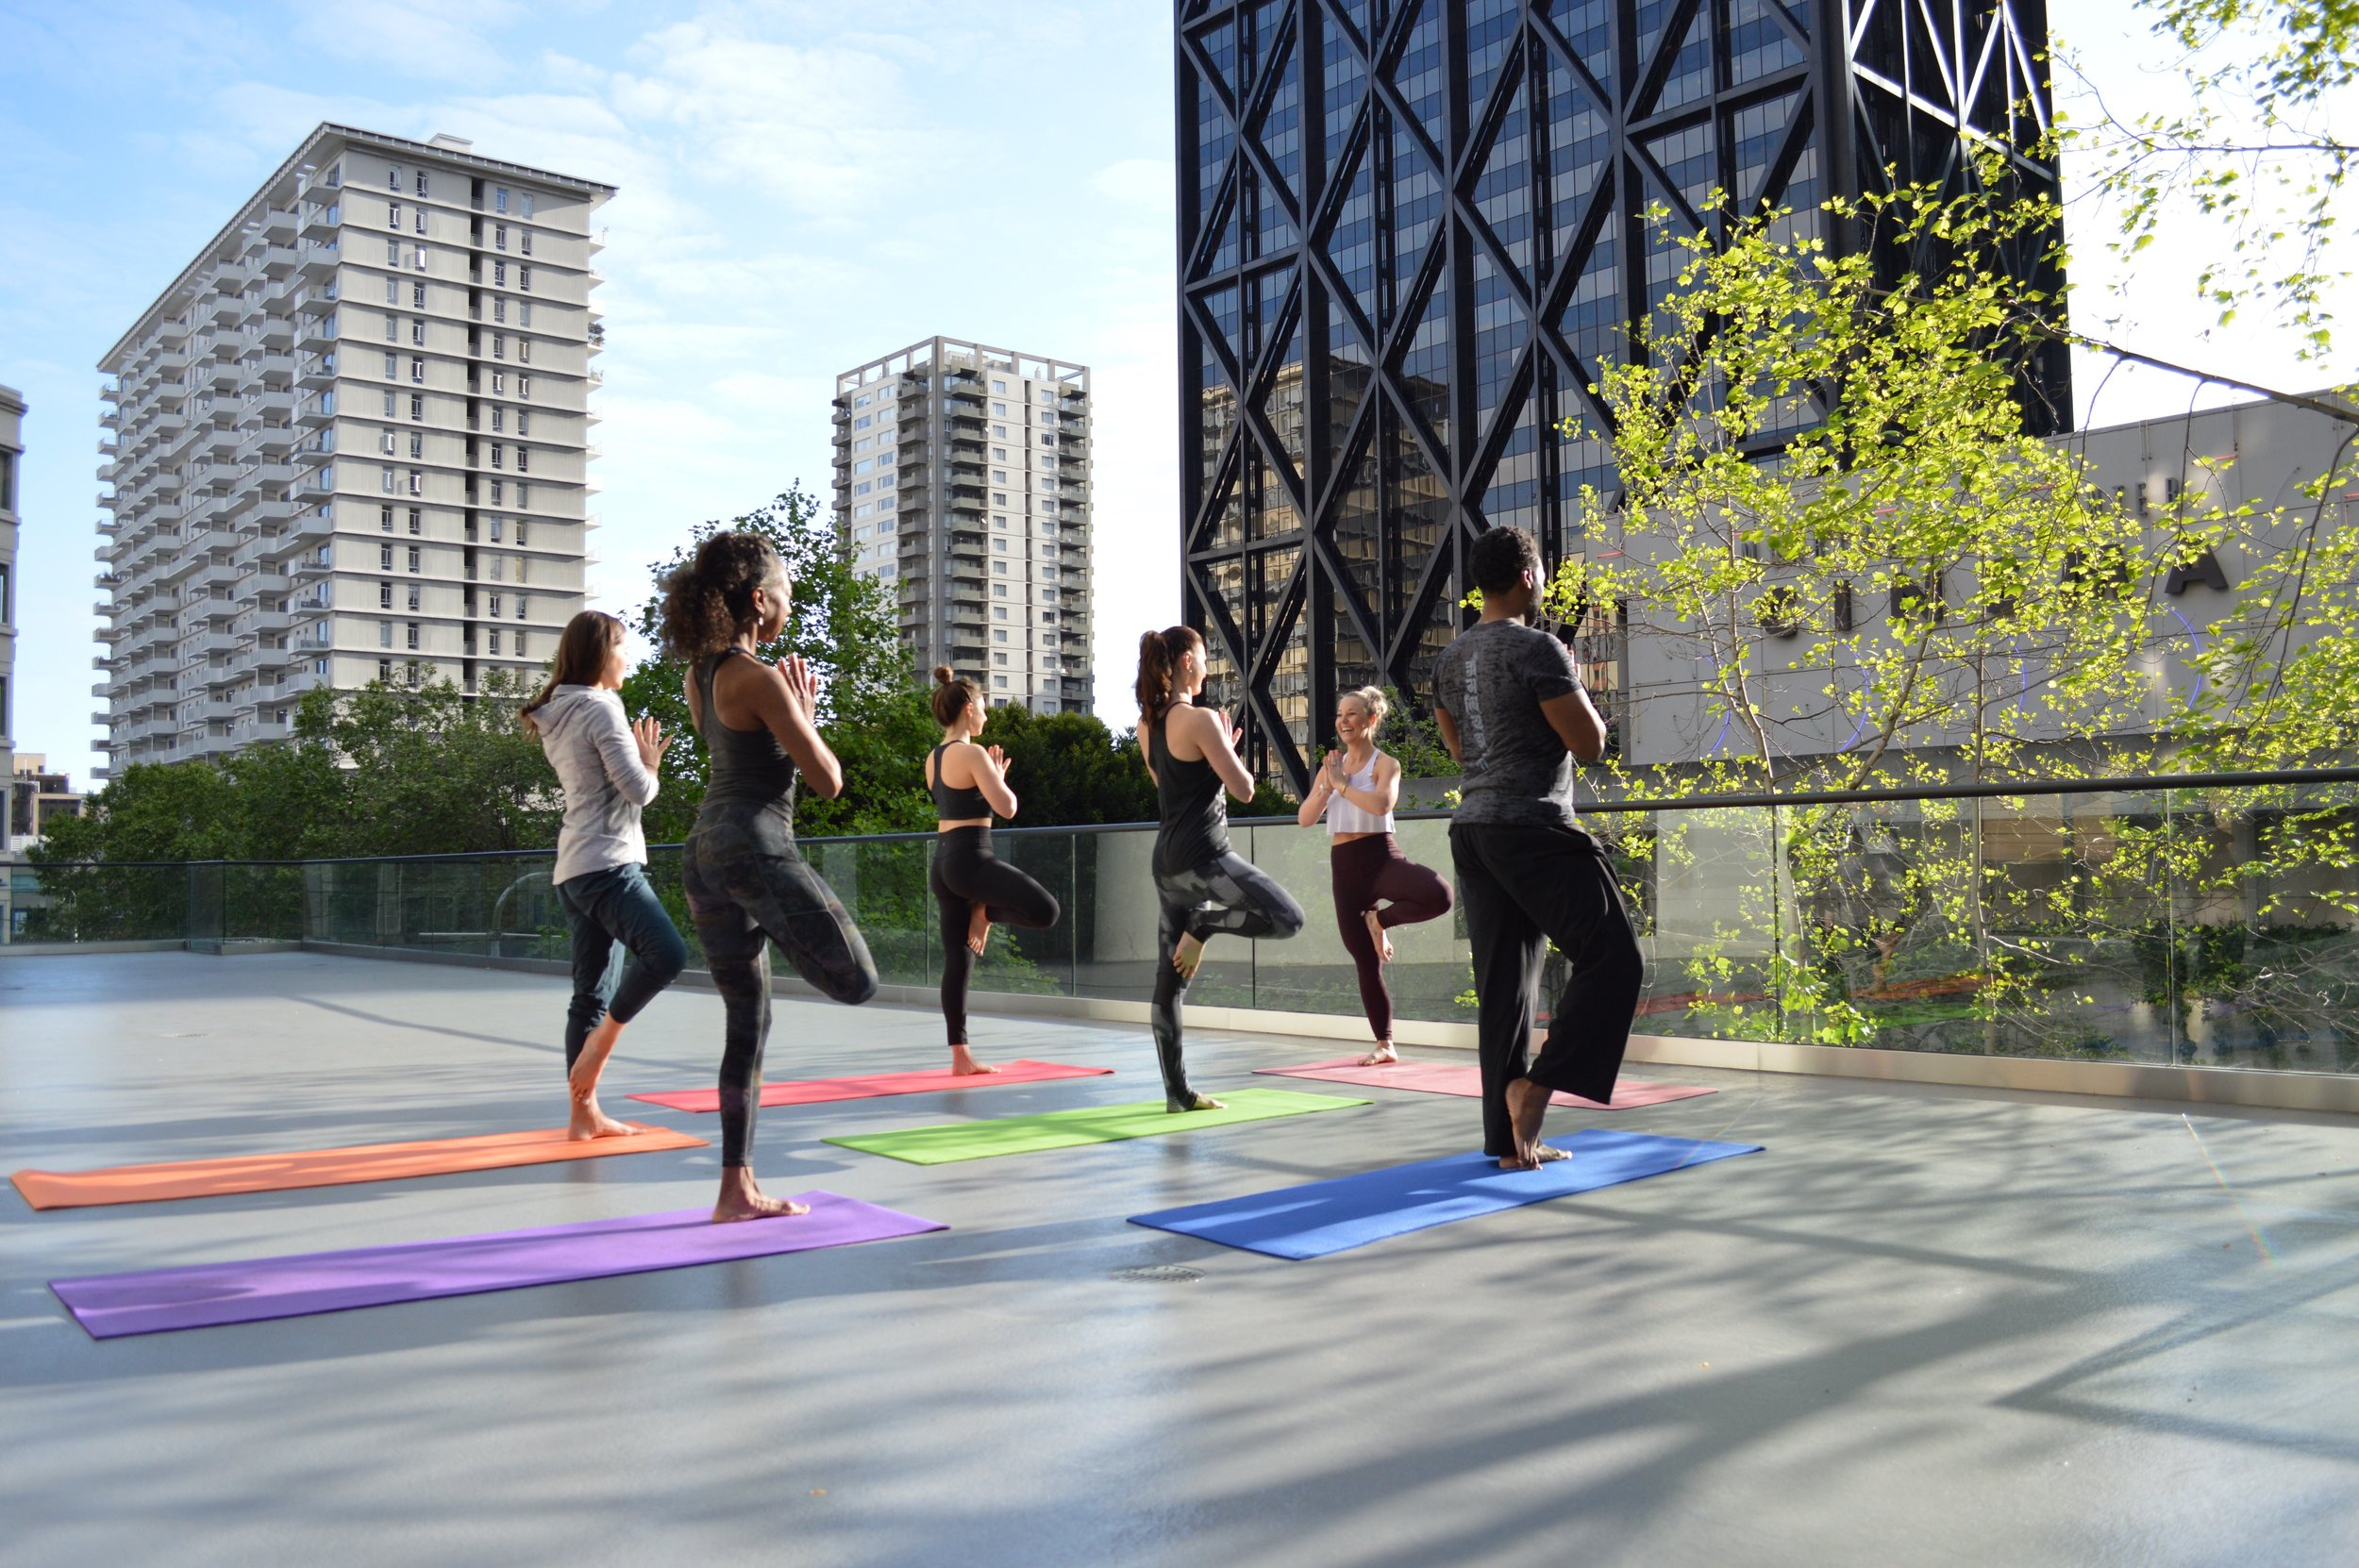 PRIVATE + SMALL GROUP - PERSONALIZED SMALL GROUP OR PRIVATE YOGA SESSIONS PROVIDING THE YOGA EXPERIENCE OF YOUR DREAMS